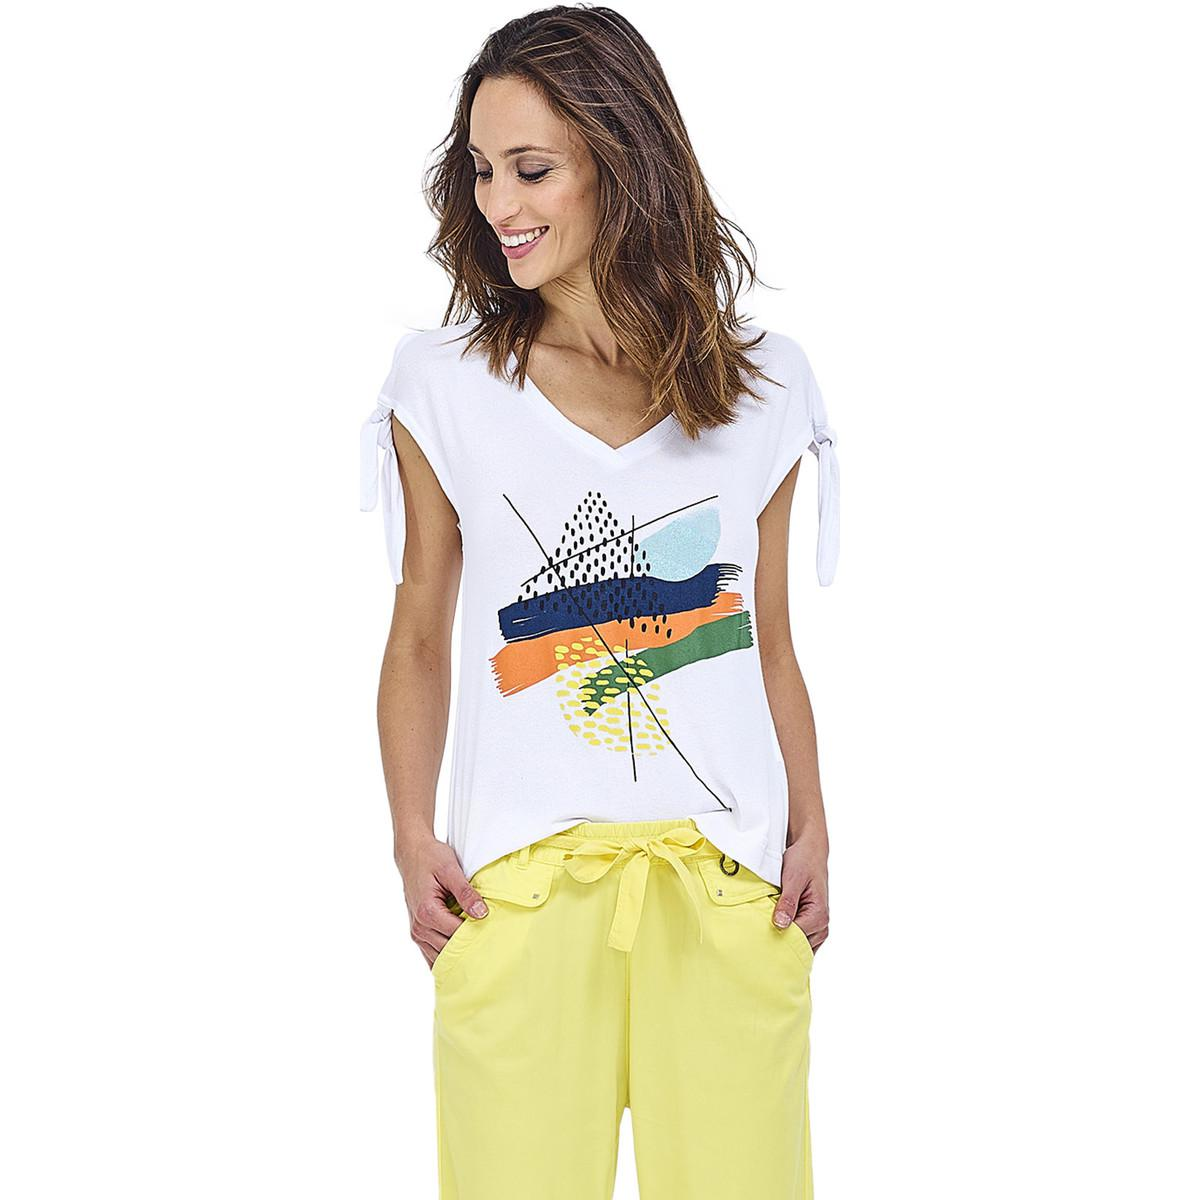 MADO ET LES AUTRES Linen T-Shirt with Embroidery Summer Collection Women